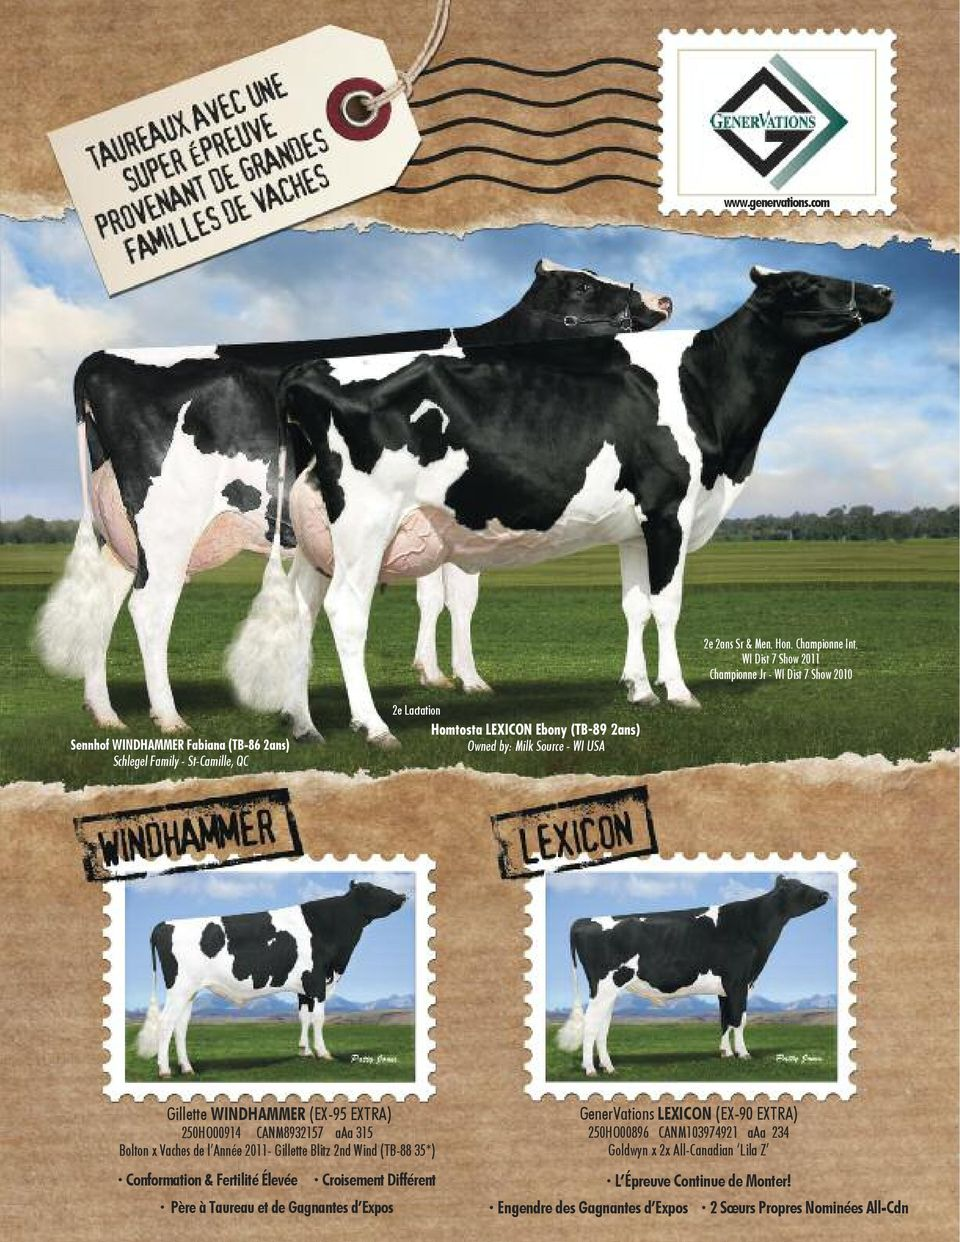 (TB-89 2as) Owed by: Milk Source - WI USA Gillette WINDHAMMER (EX-95 EXTRA) 250HO00914 CANM8932157 aaa 315 Bolto x Vaches de l Aée 2011- Gillette Blitz 2d Wid